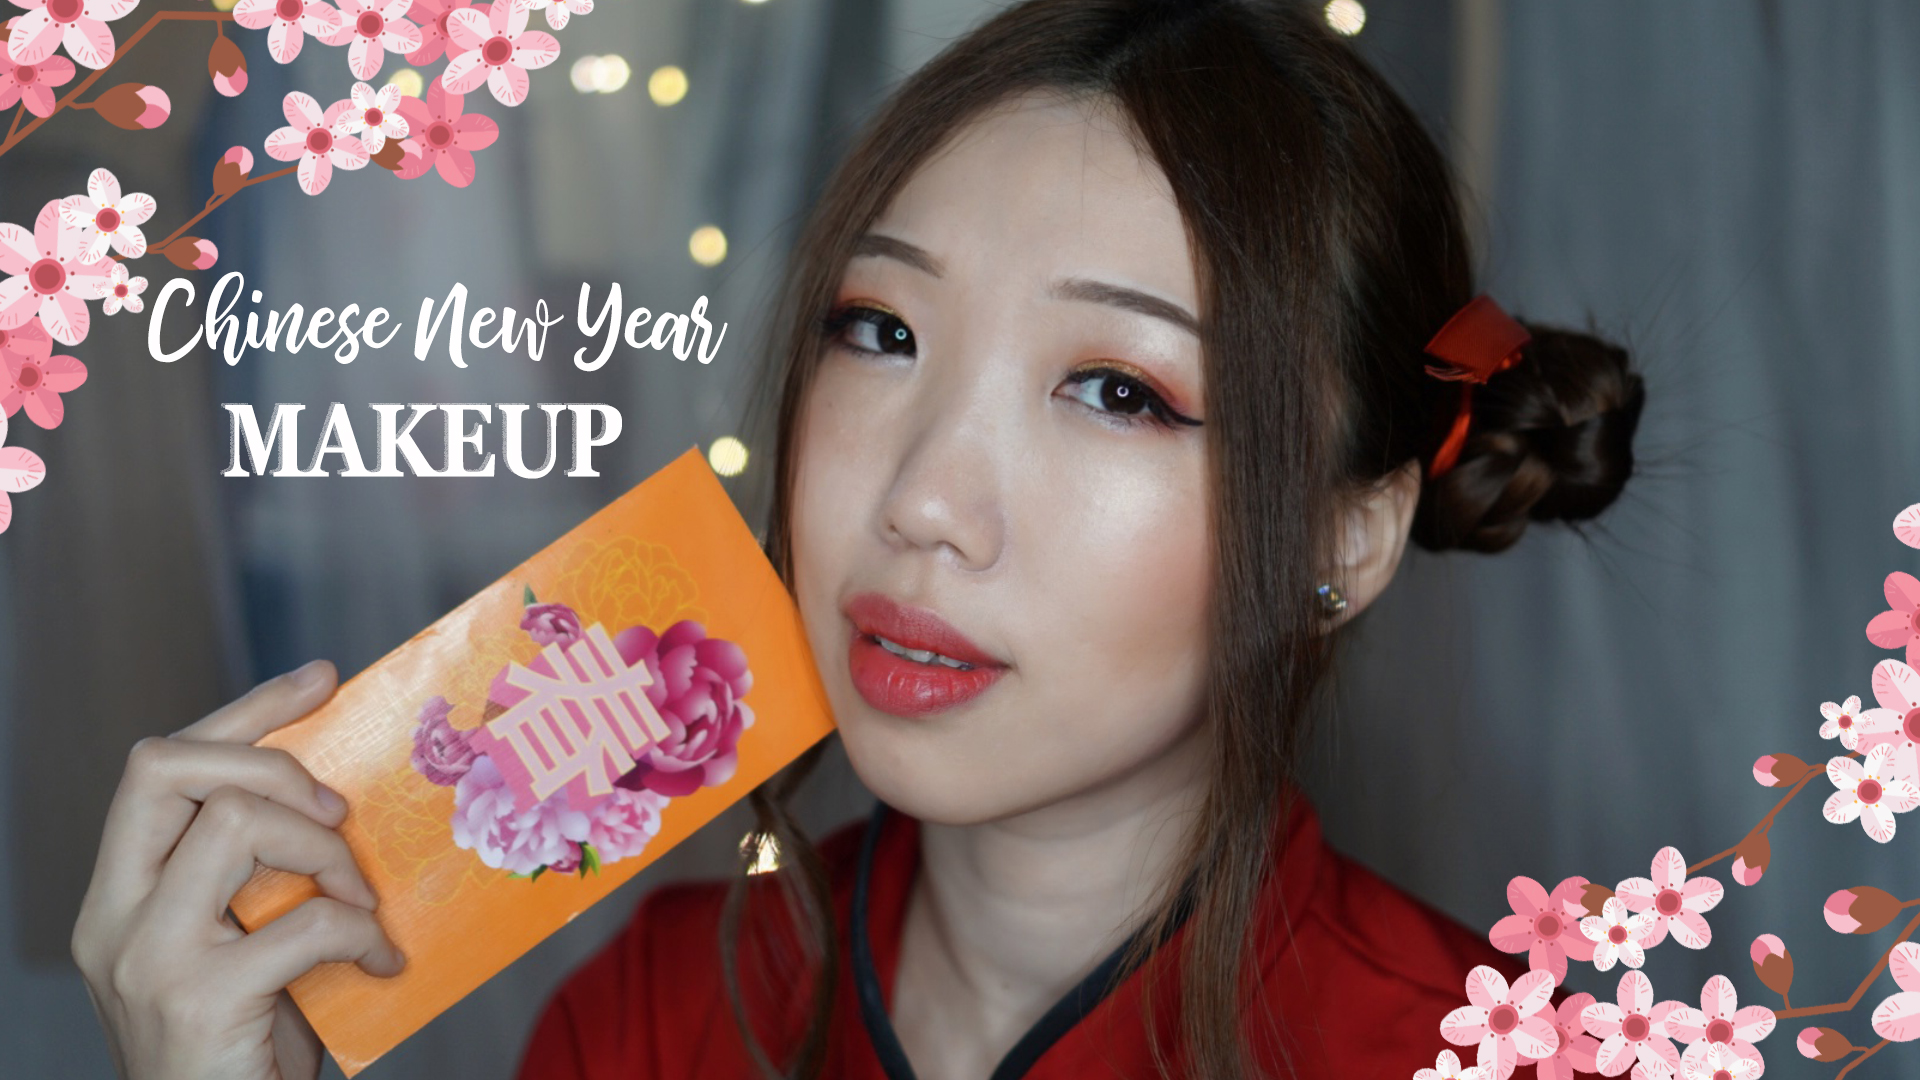 Chinese New Year Makeup